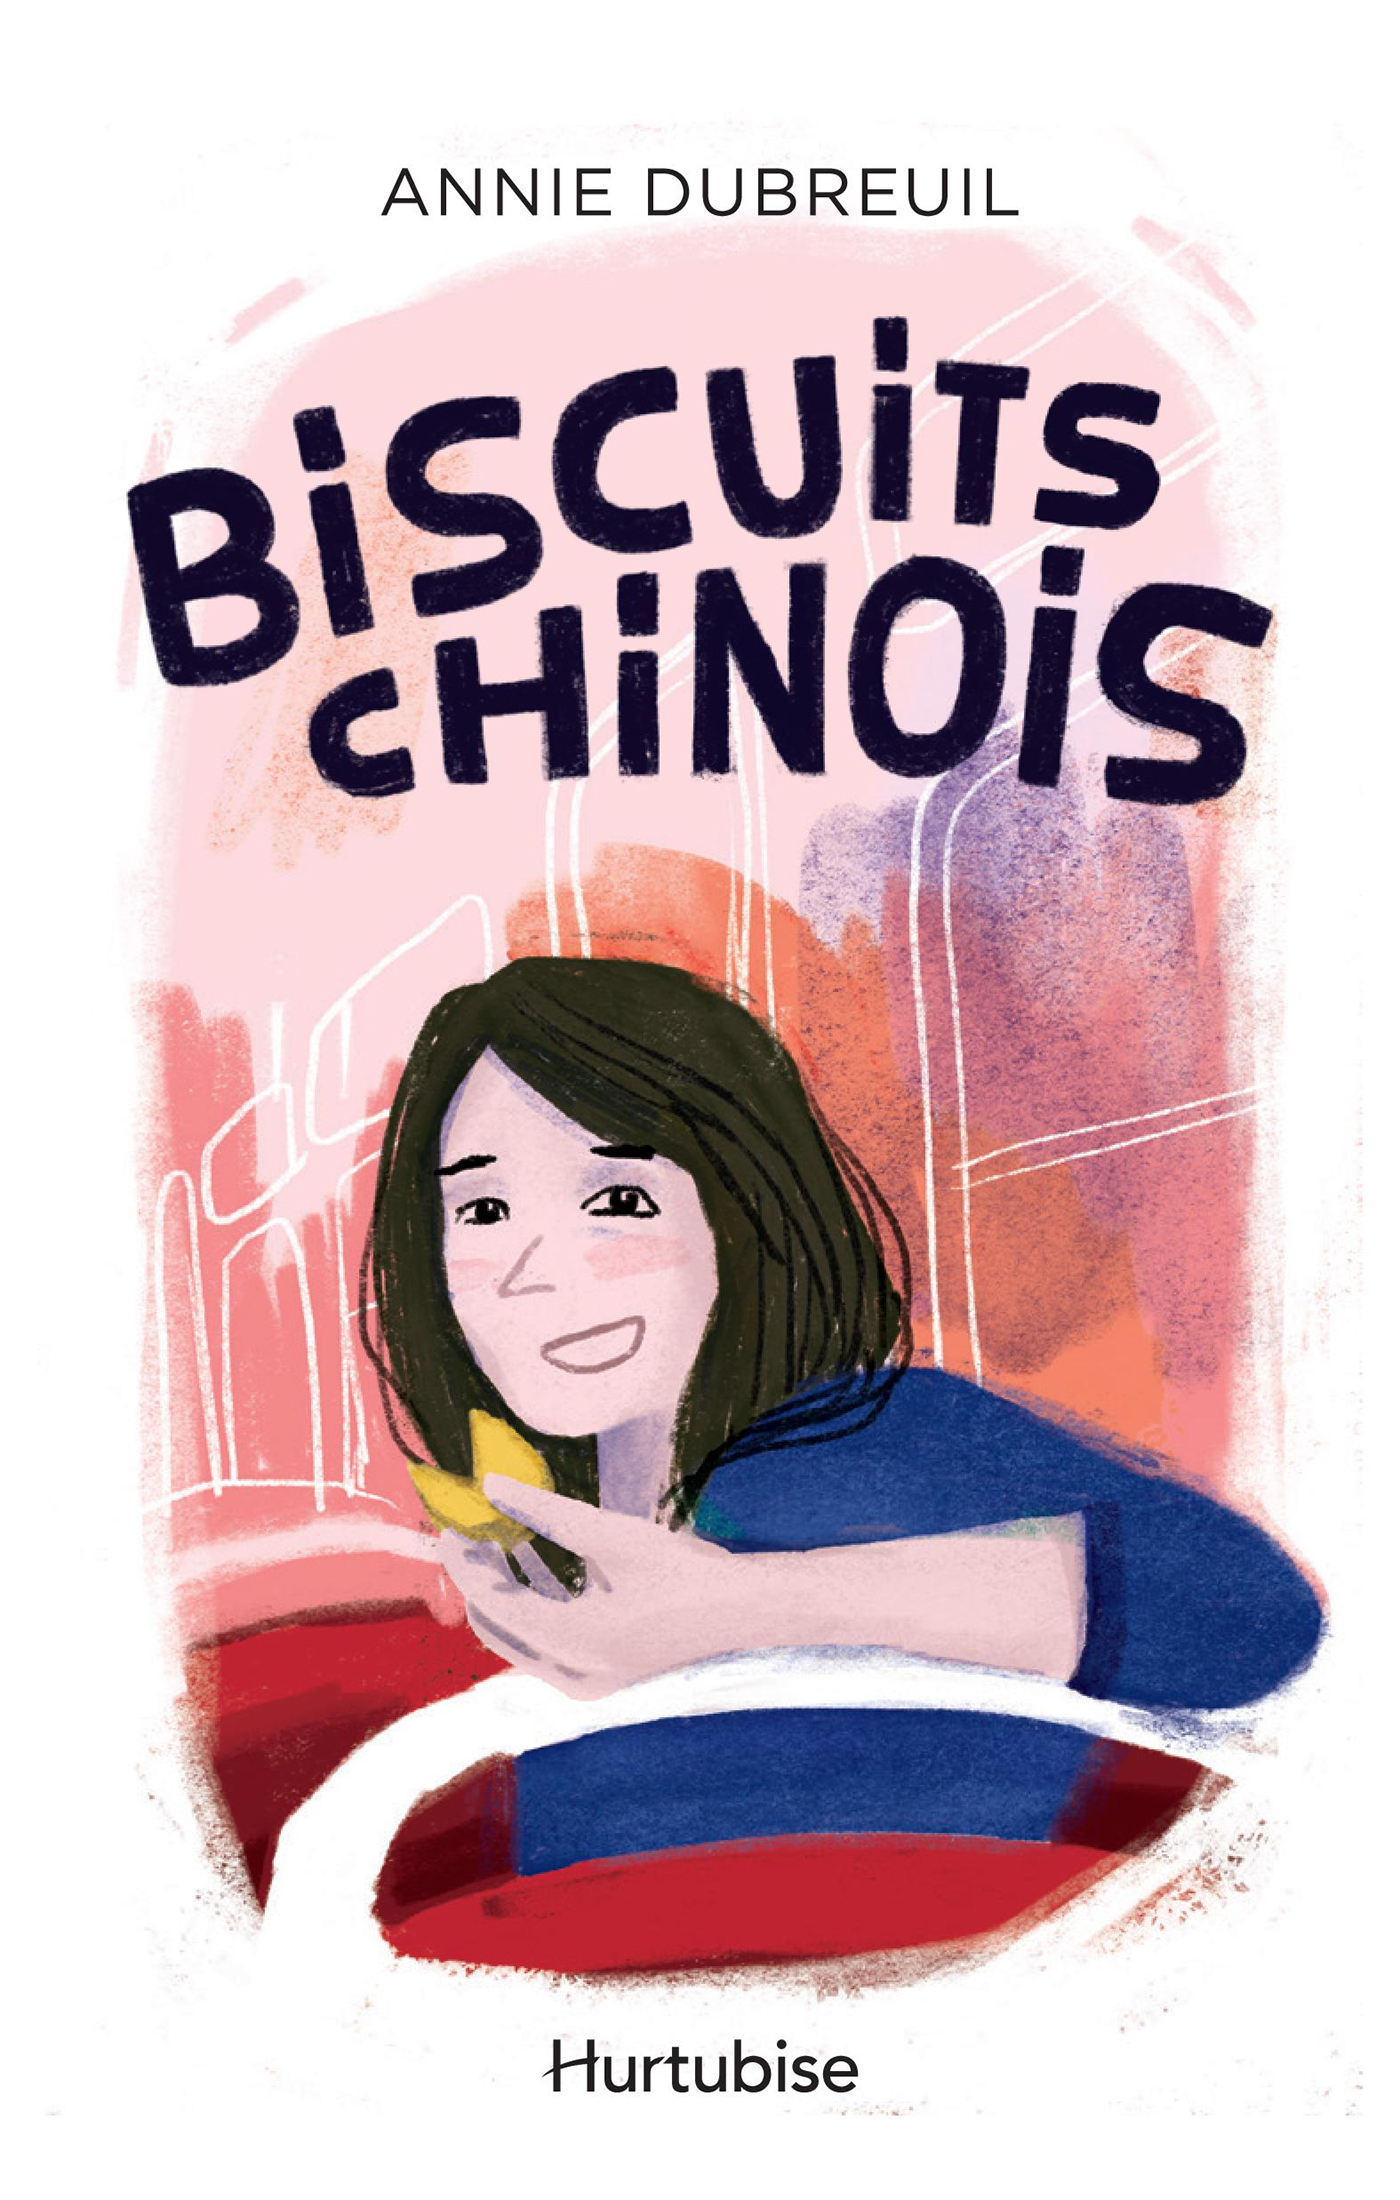 Couverture : Biscuits chinois Annie Dubreuil